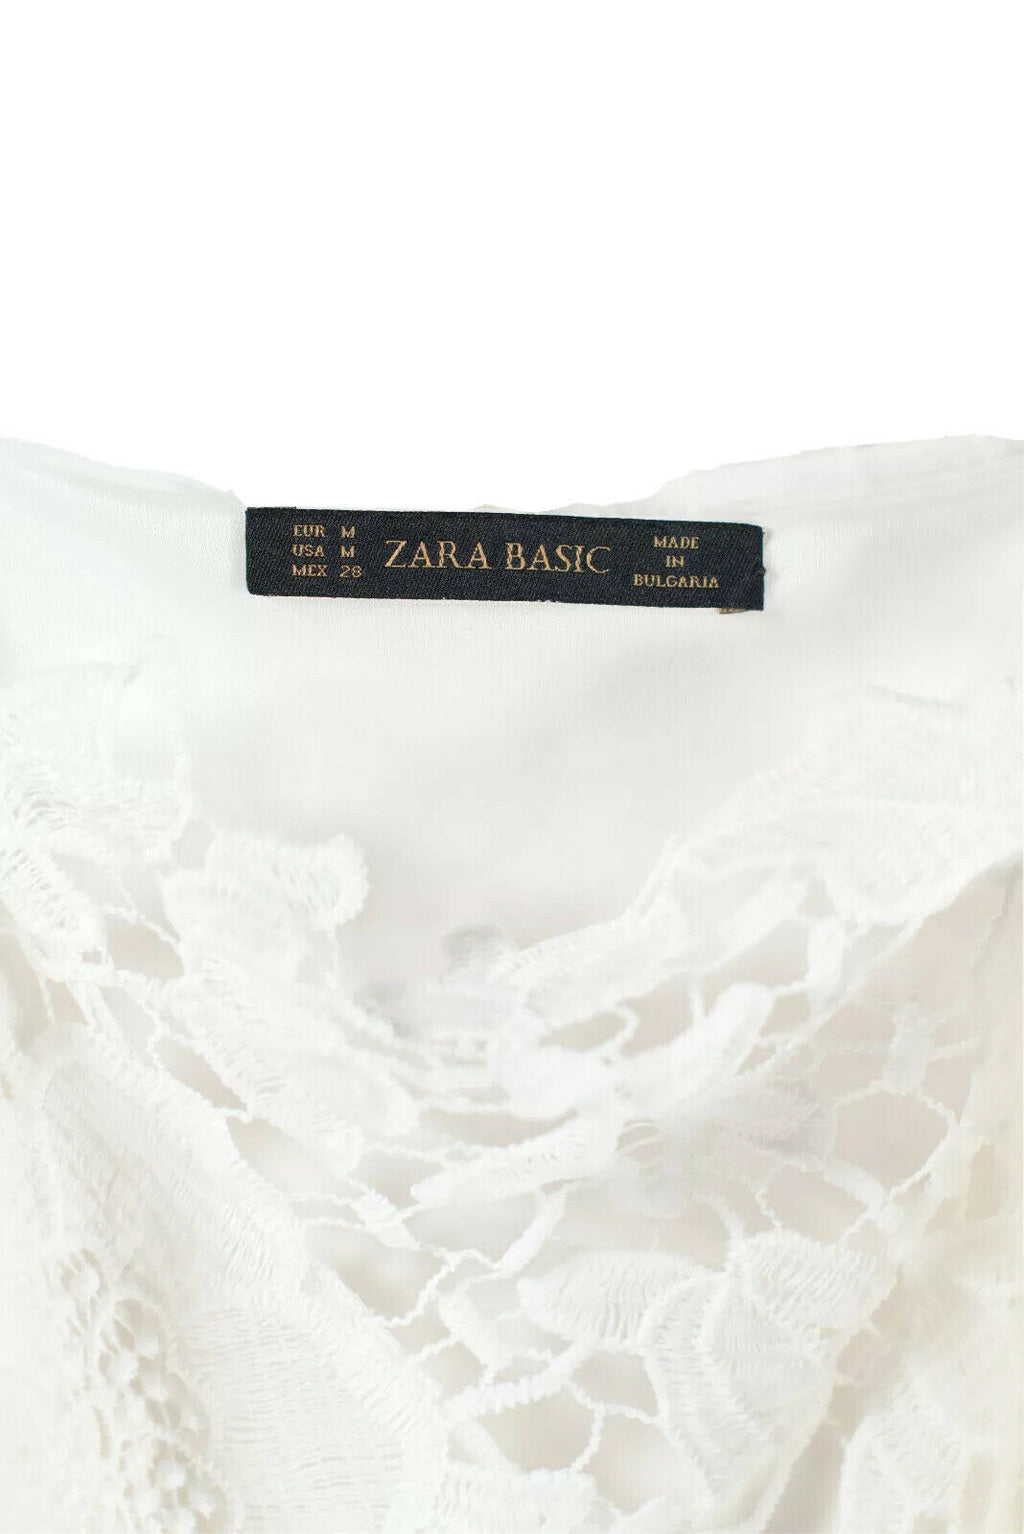 Zara Womens Medium White Dress Sleeveless Floral Lace Sheer Spaghetti Straps